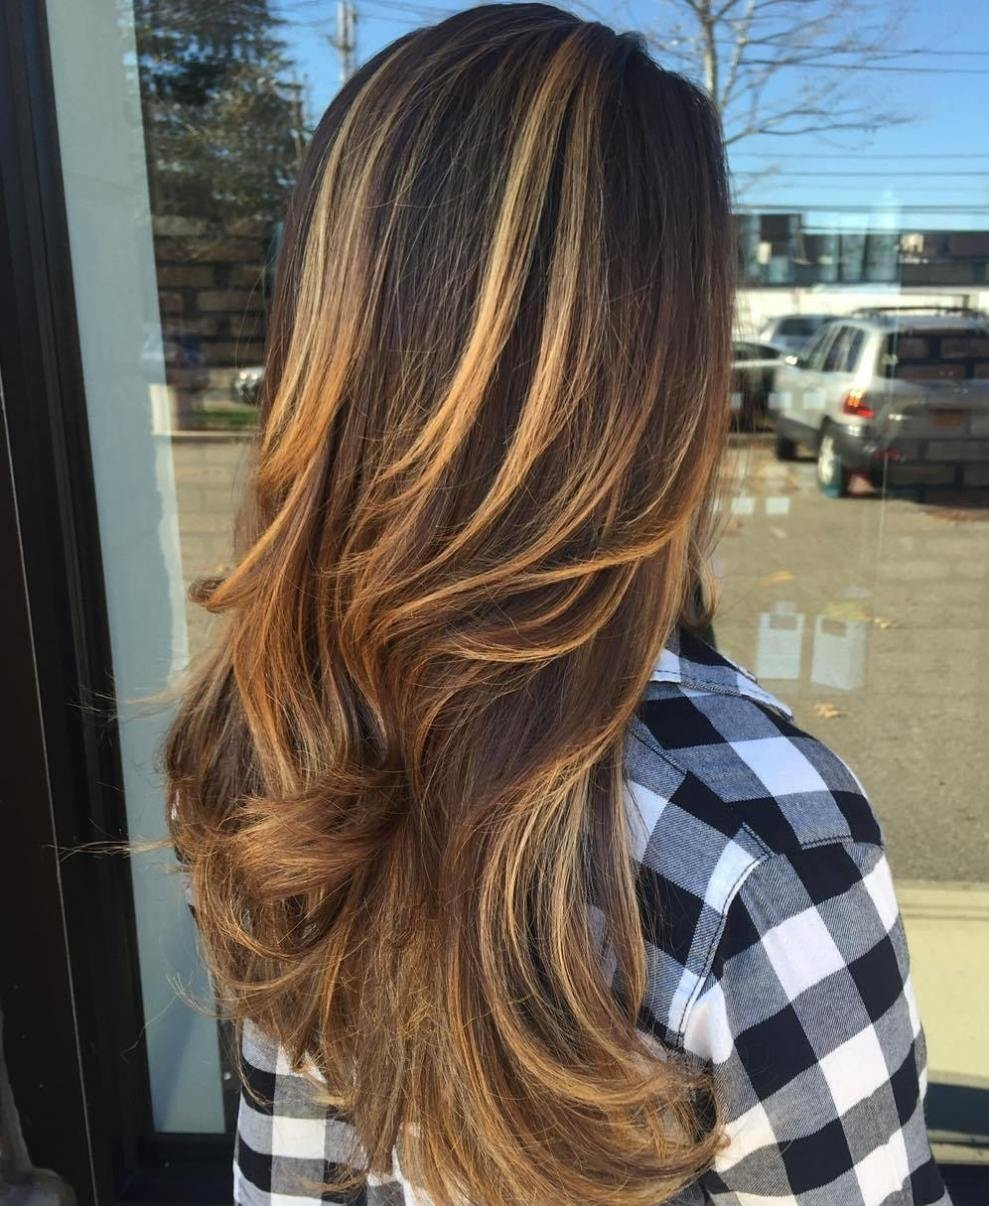 10 Beautiful Hair Highlight Ideas For Dark Brown Hair best balayage hair color ideas 70 flattering styles for 2018 13 2021